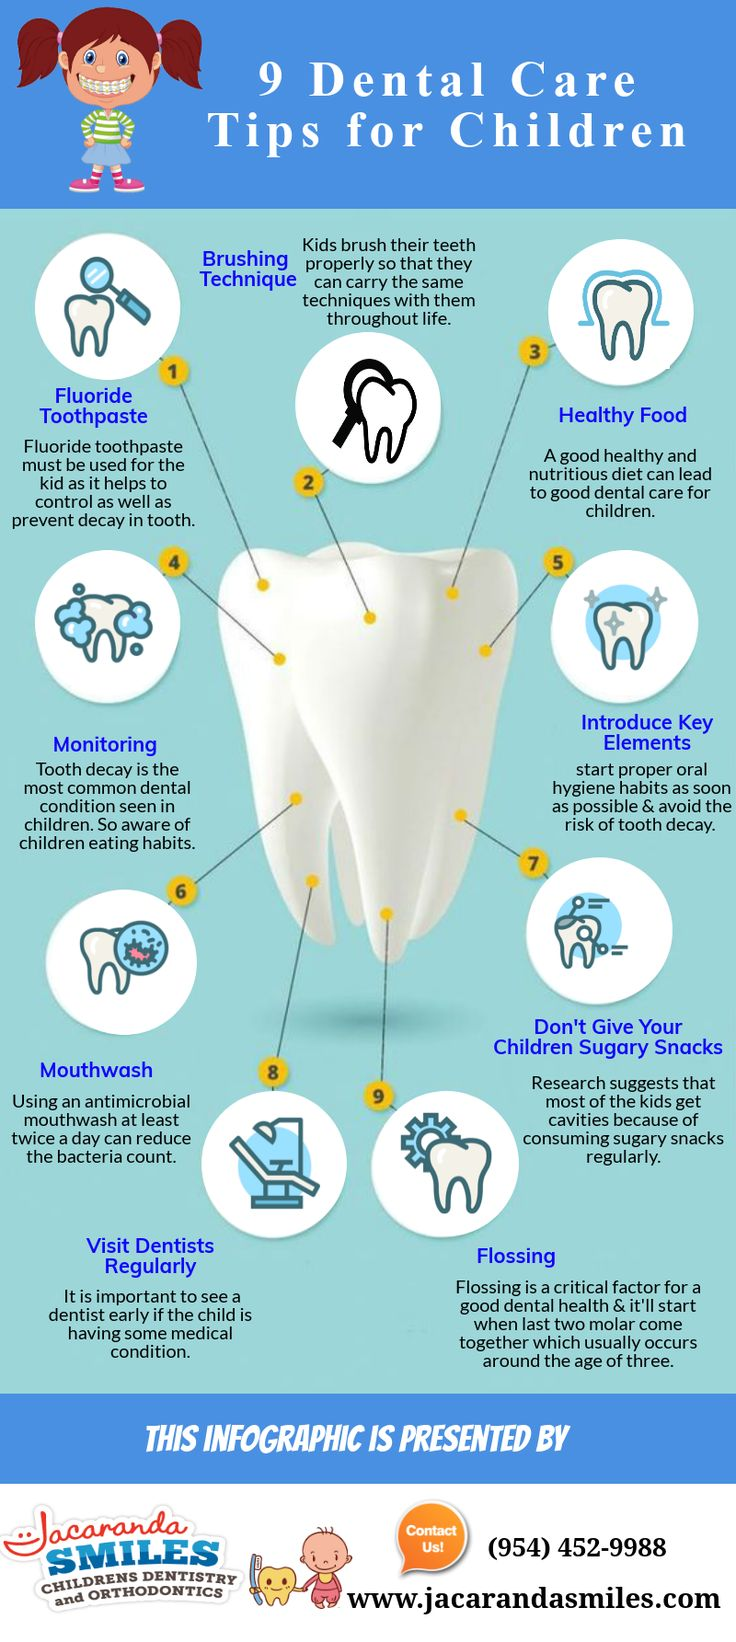 43 best Kids Care Dental images on Pinterest | Dental services ...